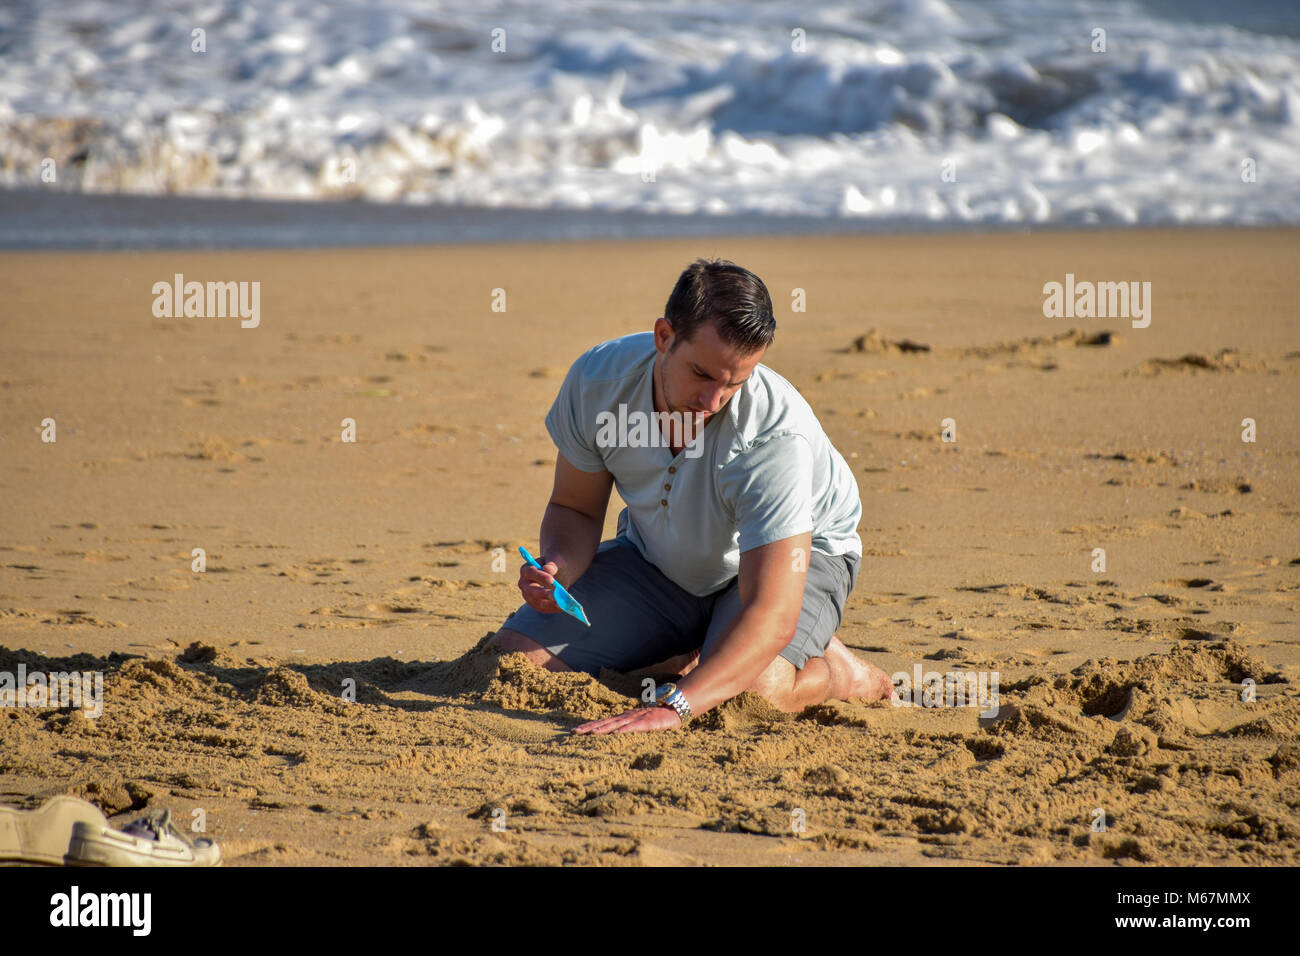 Huntington Beach California is known for it's surfing beaches but of course also for building sand castles. - Stock Image